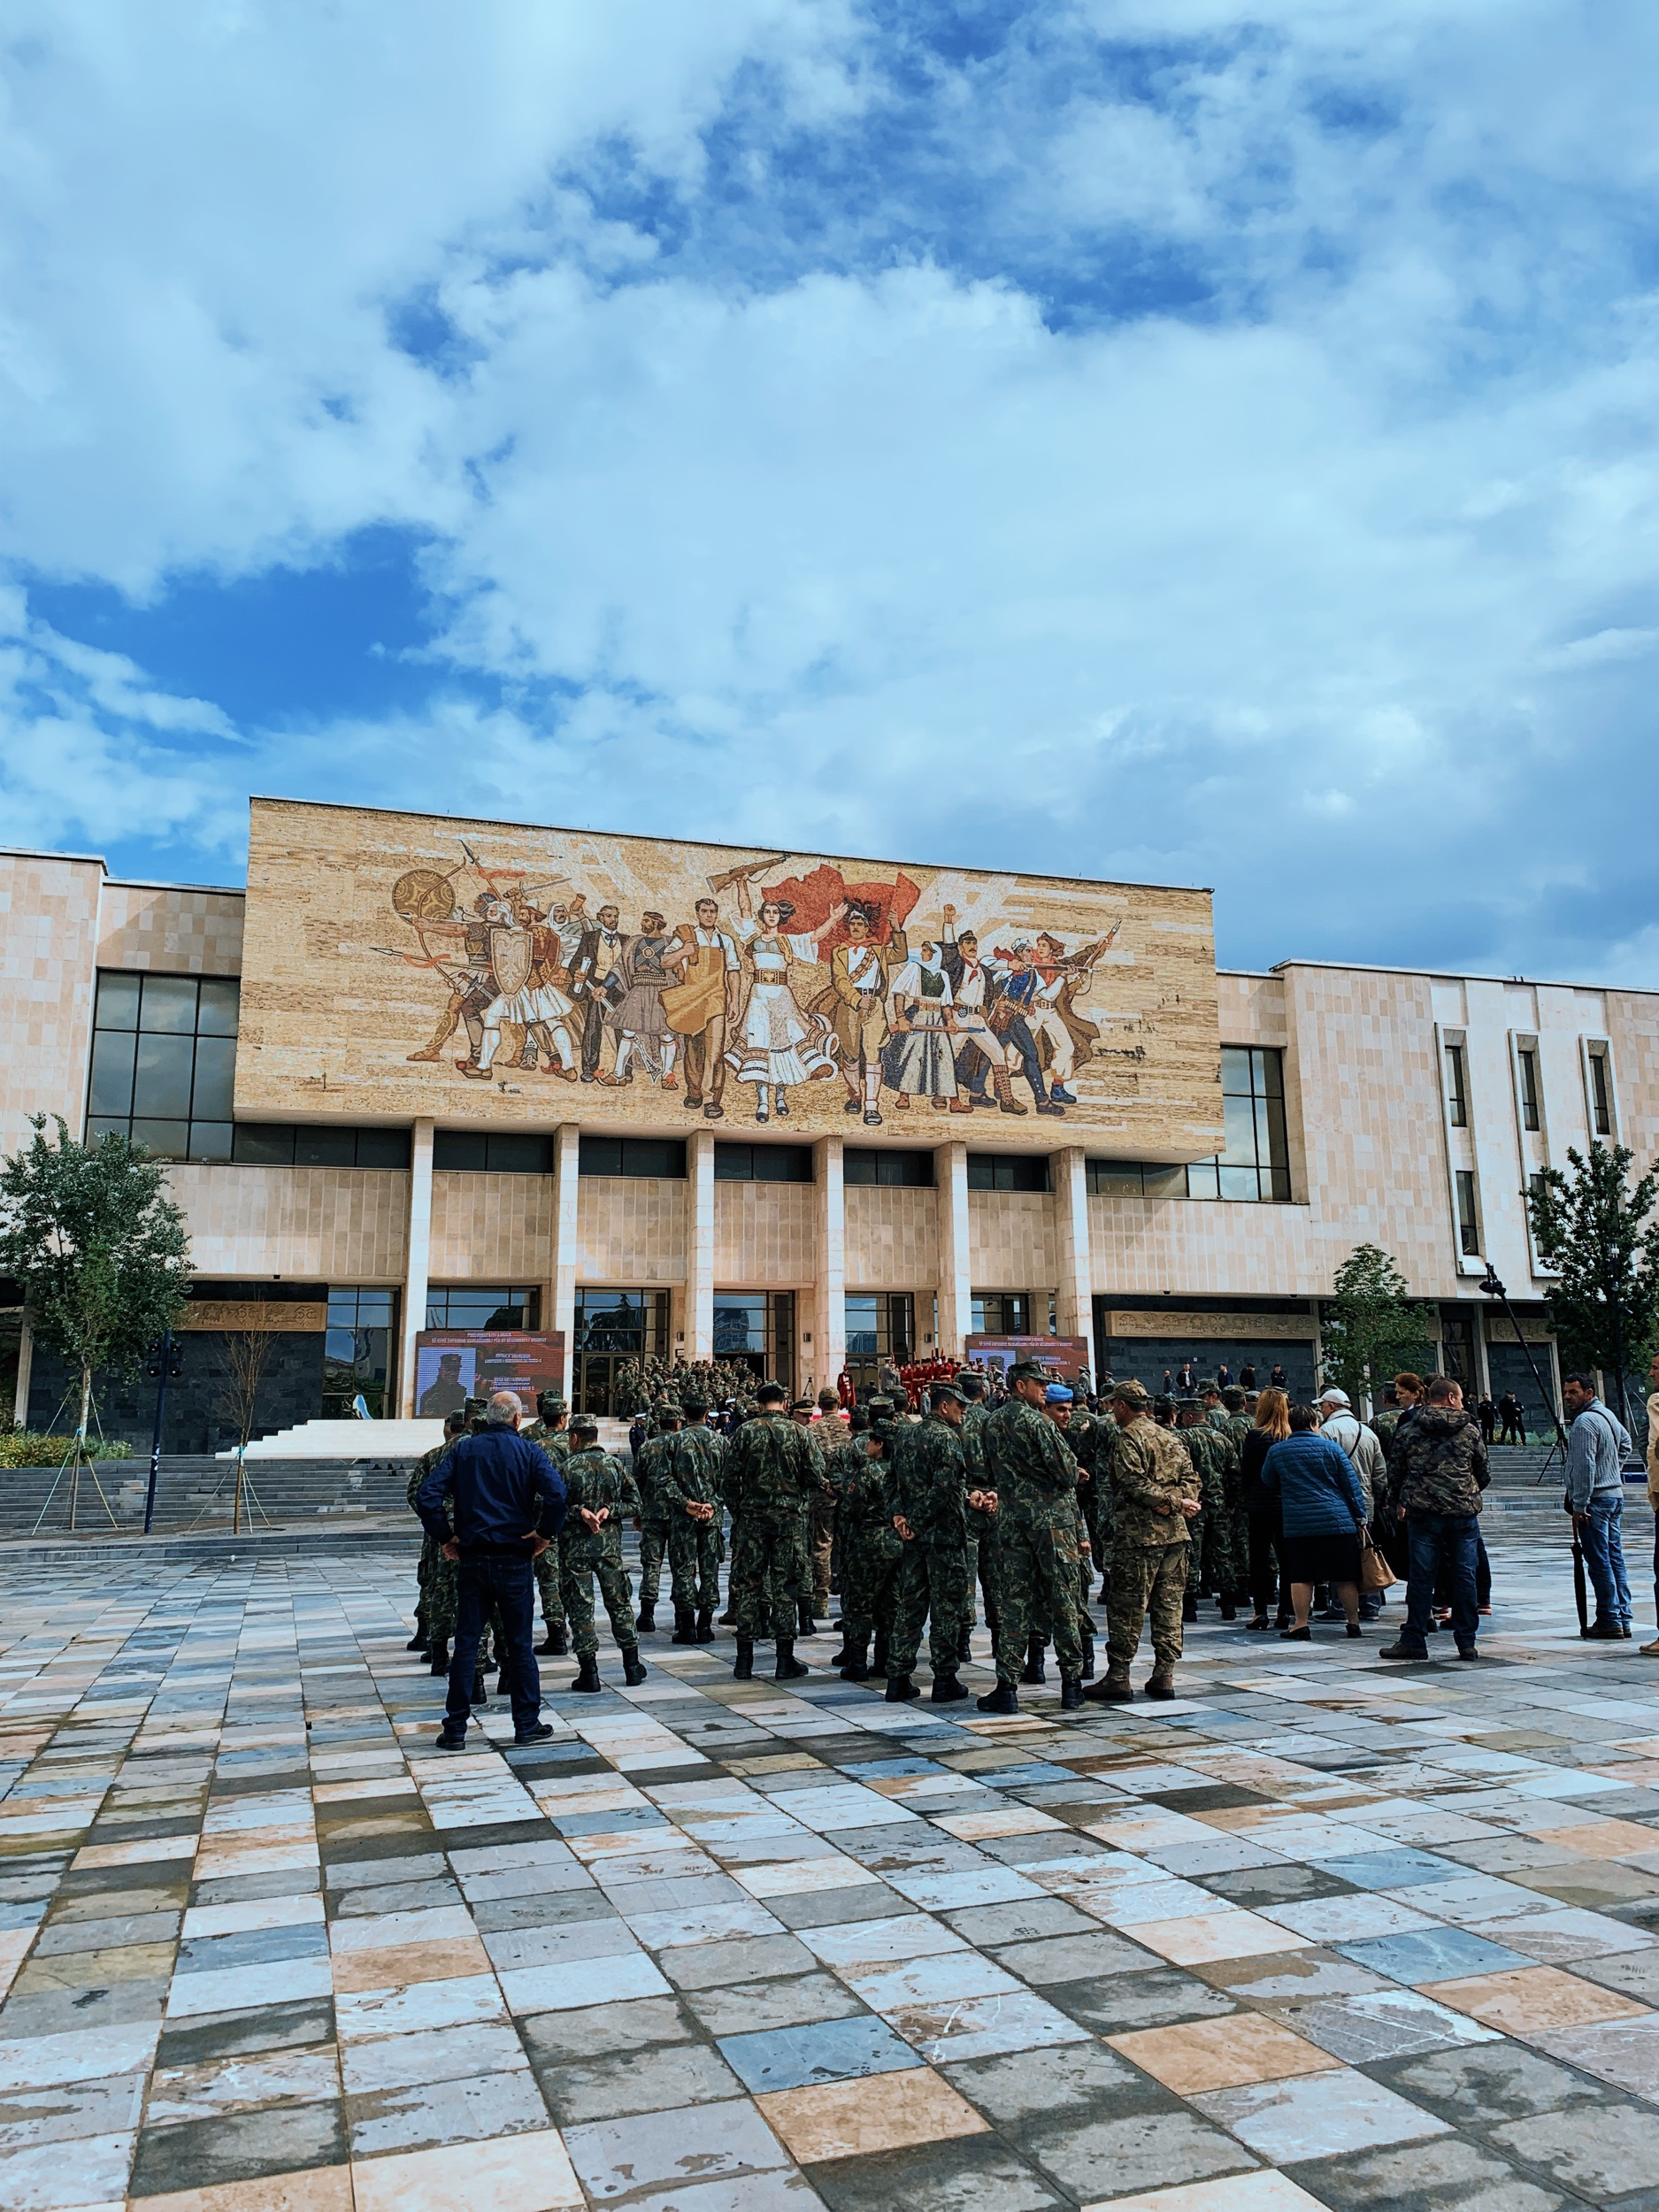 Skanderbeg Square, the center of town. Military men gather for a commemoration of some kind in front of the  National Museum of History .